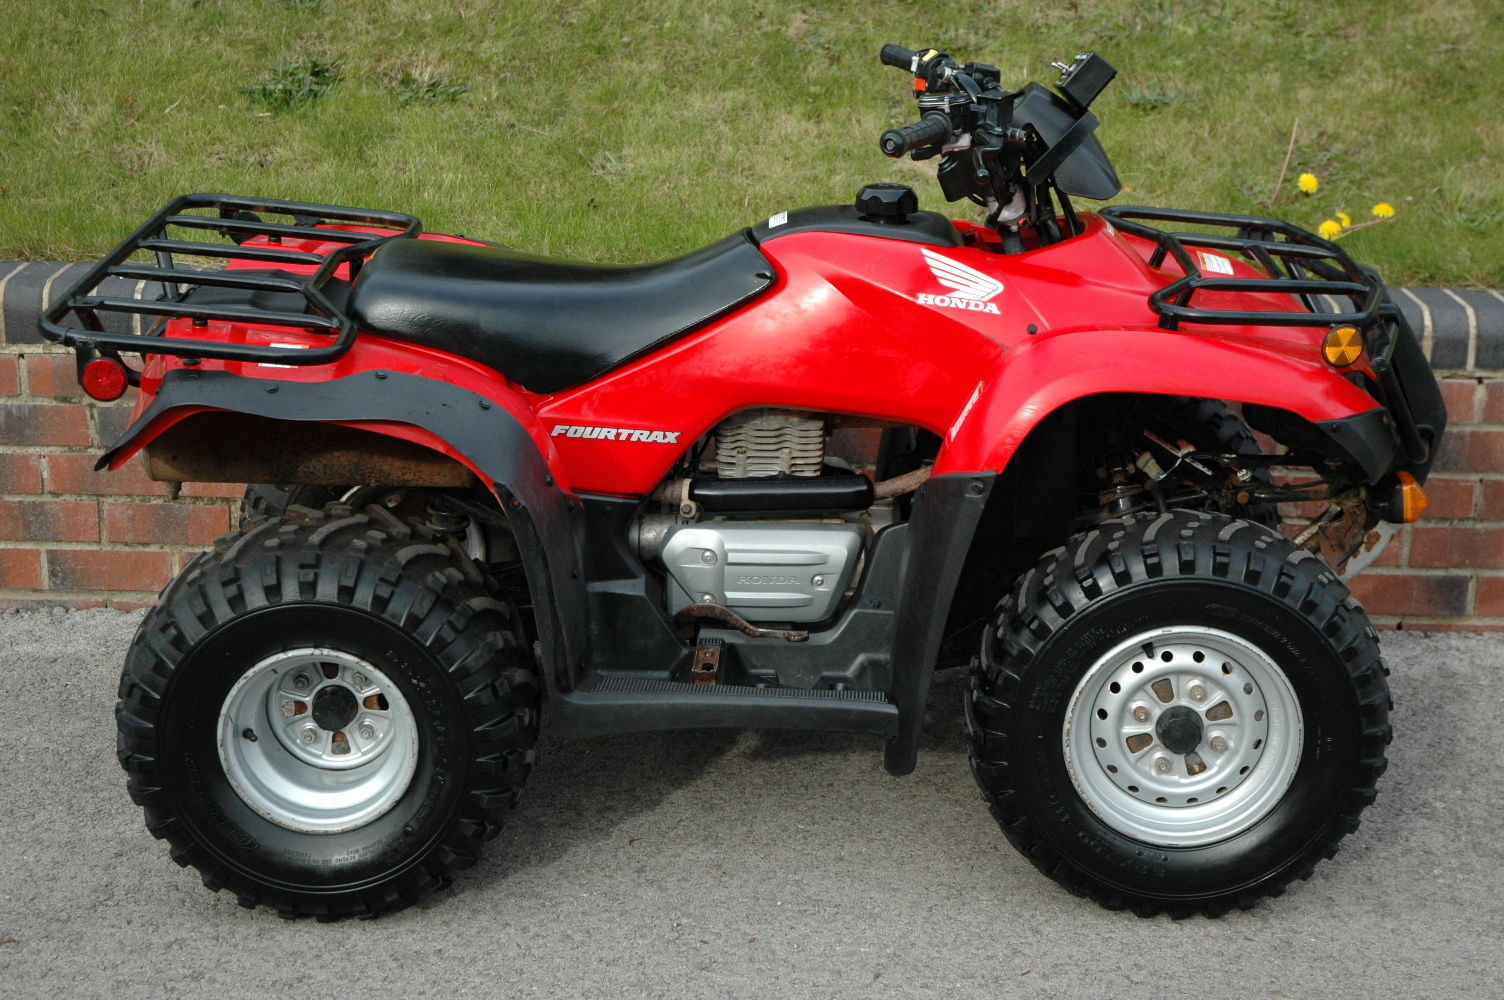 honda fourtrax trx250tm quad bike atv road registered Honda Recon ATV Tires Honda TRX250TM Clutch